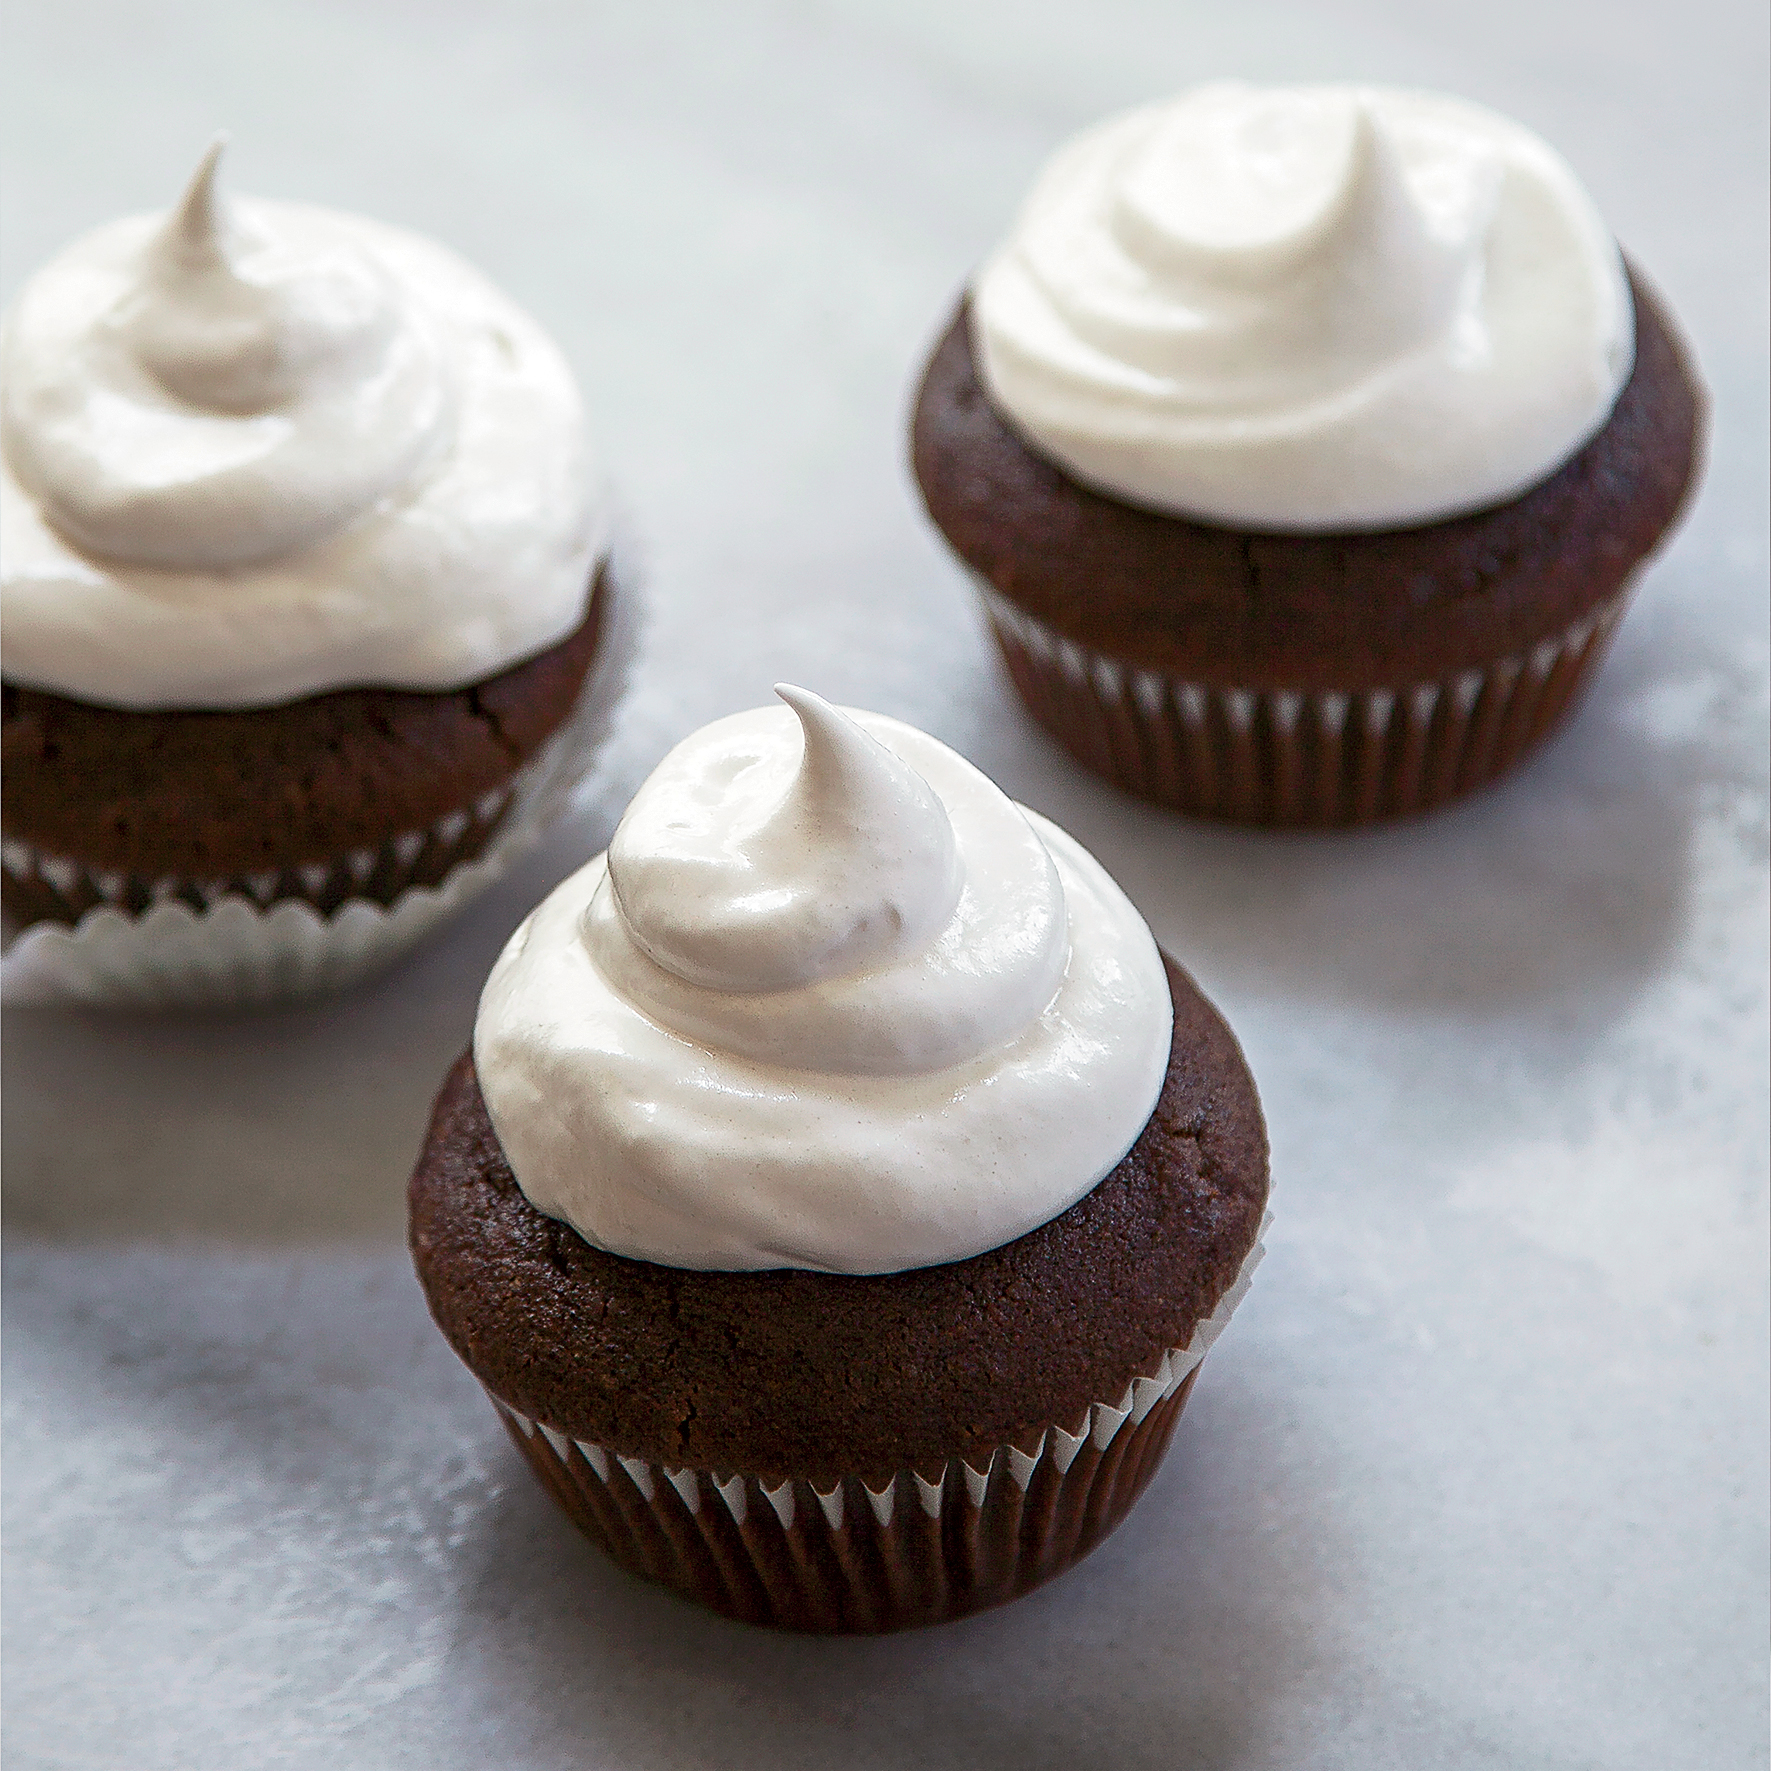 original-201309-r-hot-cocoa-cupcakes-with-marshmallow-frosting.jpg